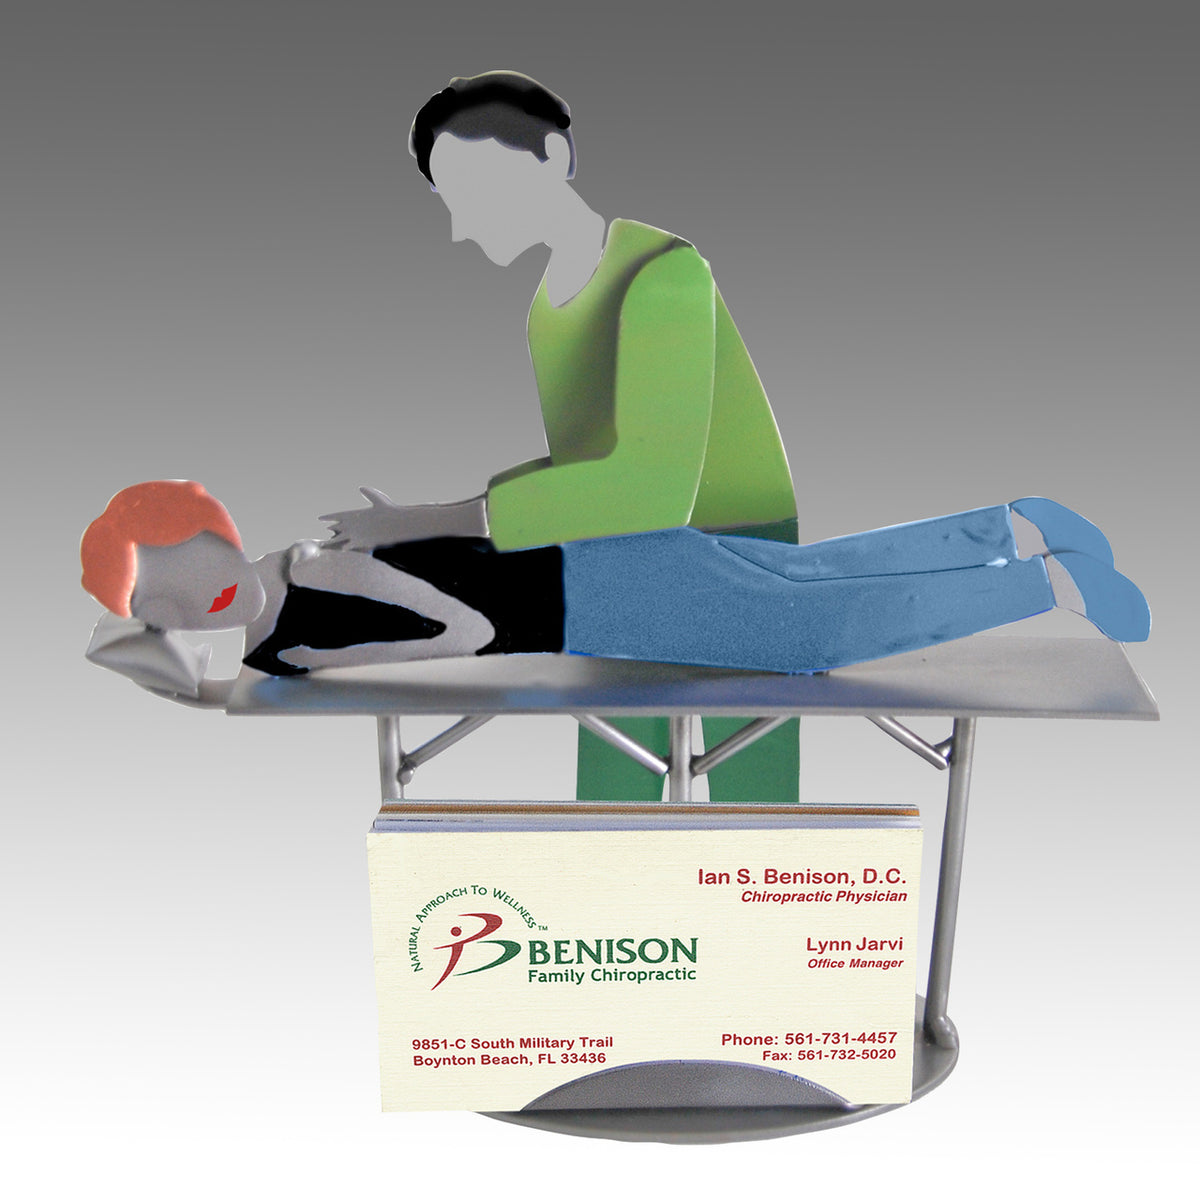 Chiropractor Masseuse Business Card Holder